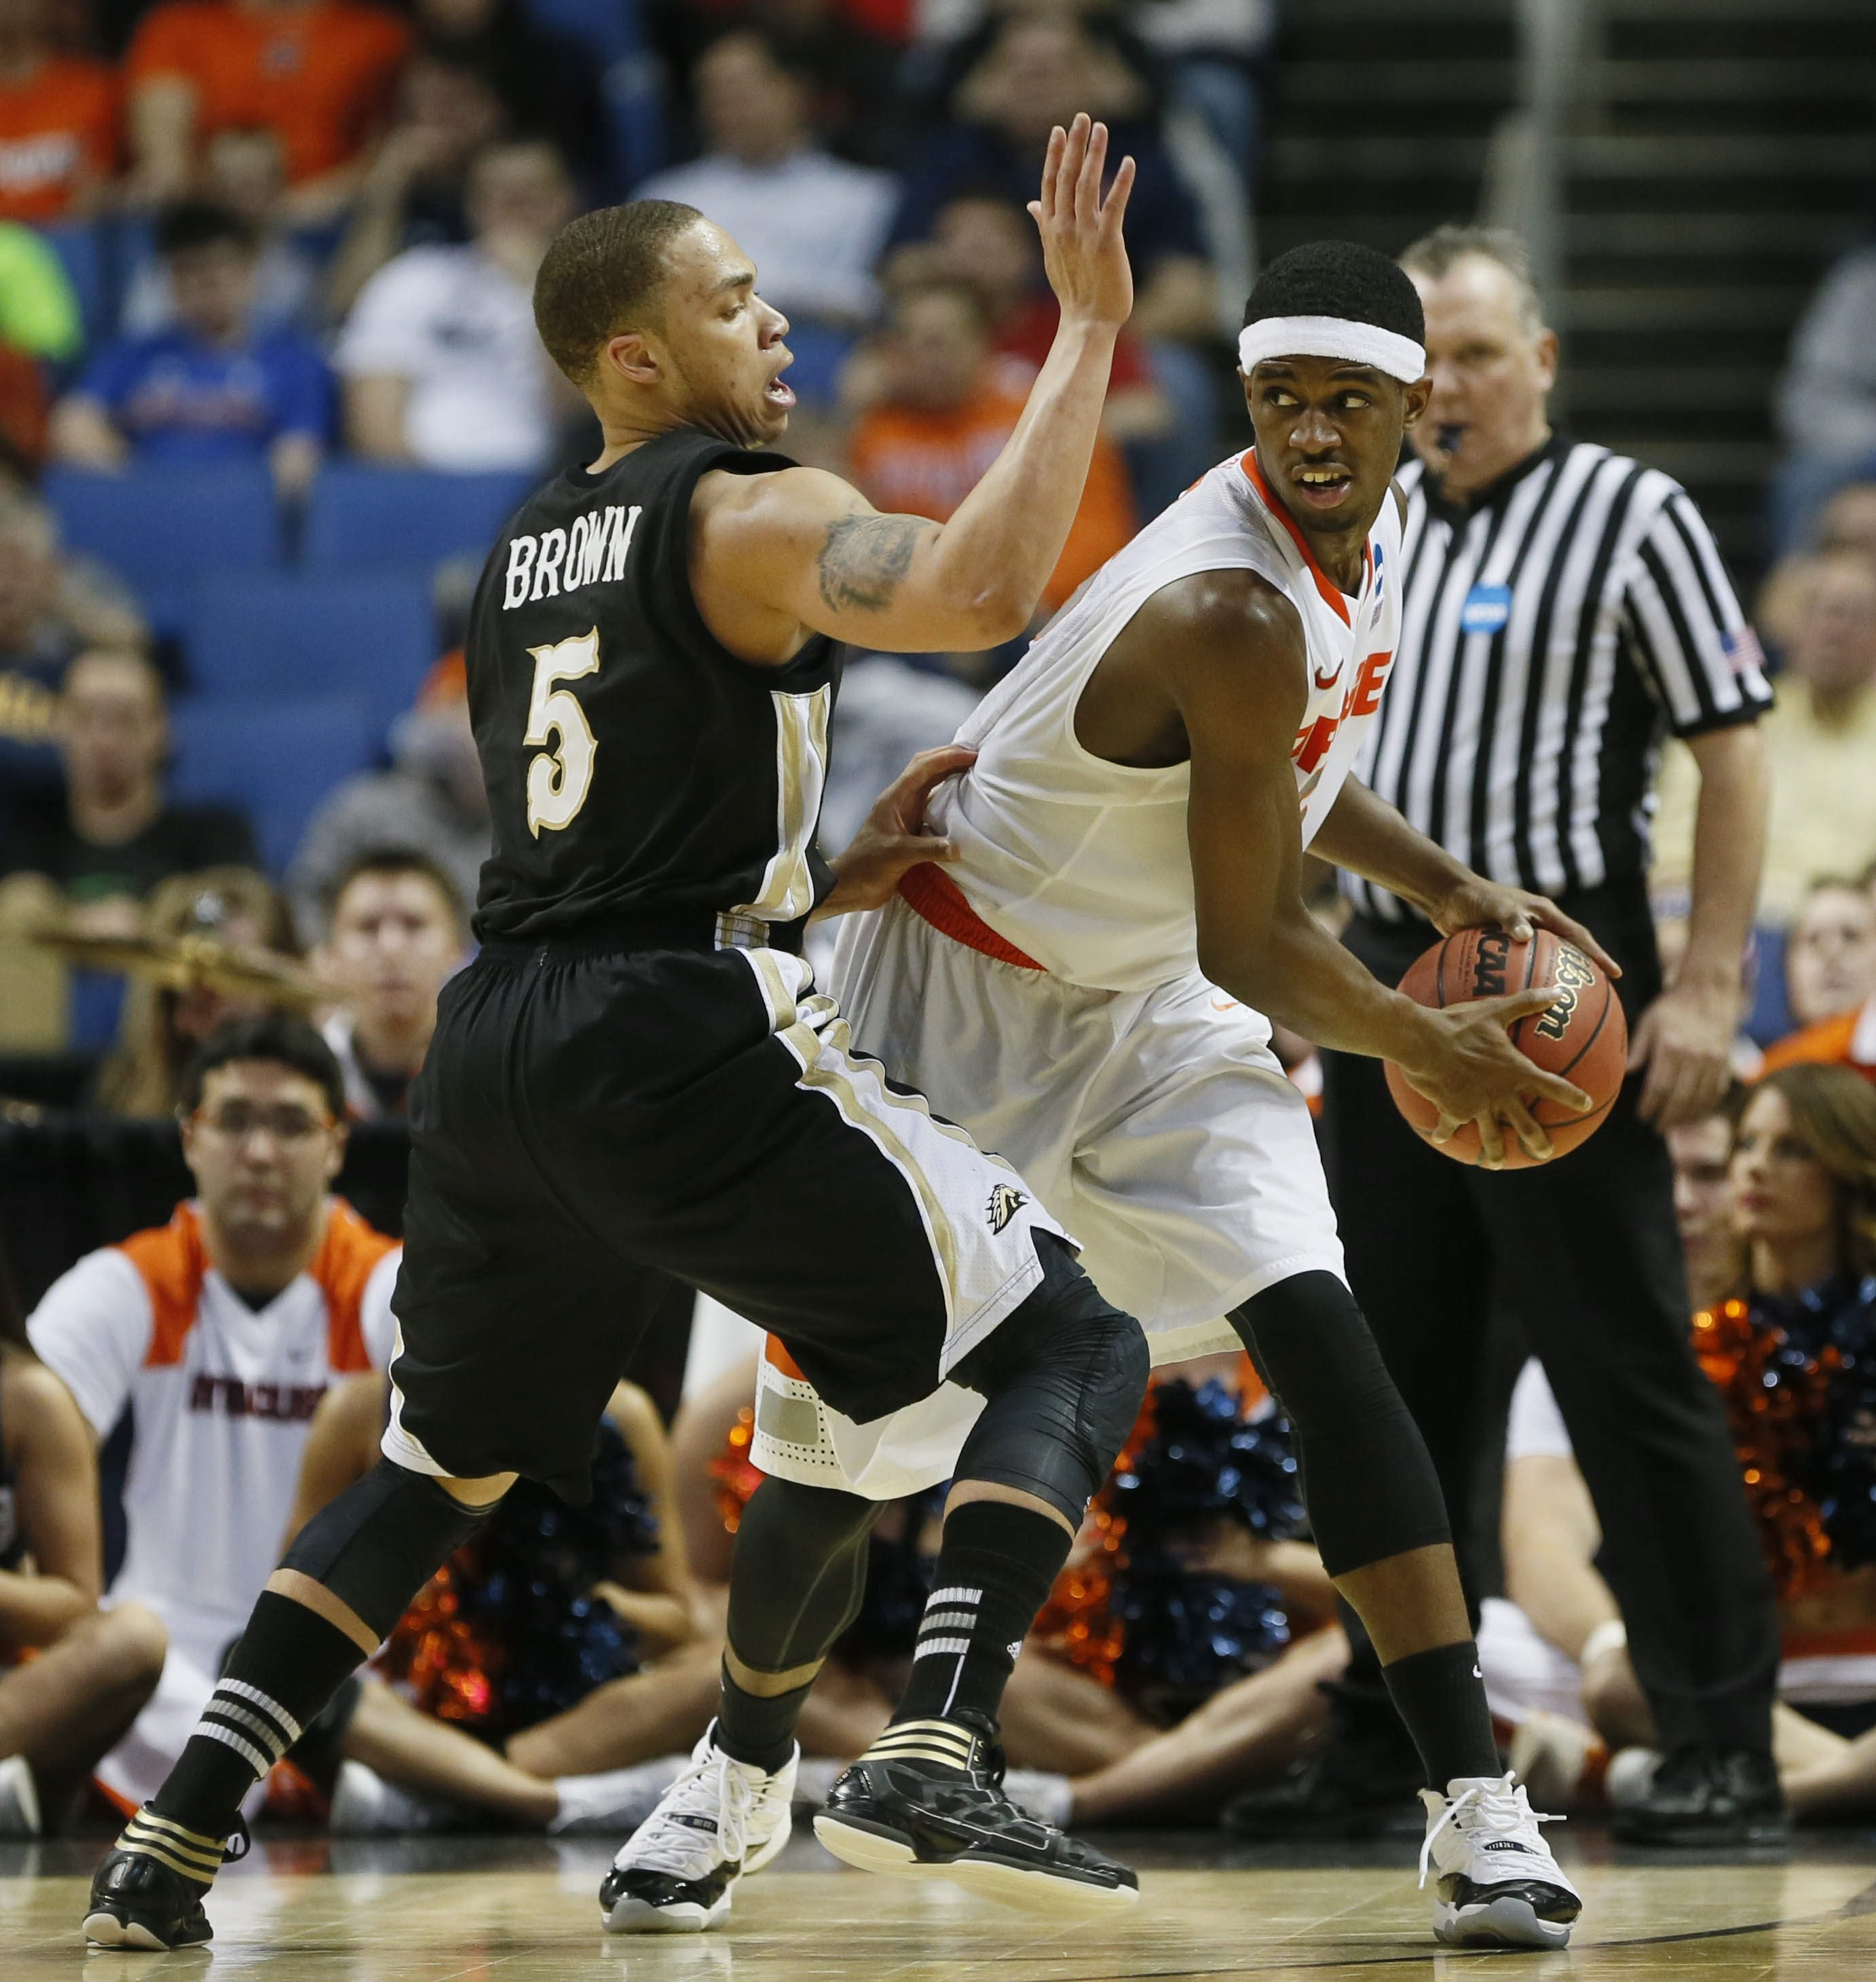 Syracuse's C.J. Fair, right, looks for room against Western Michigan's David Brown during the second half at First Niagara Center. Fair had a game-high 11 rebounds.